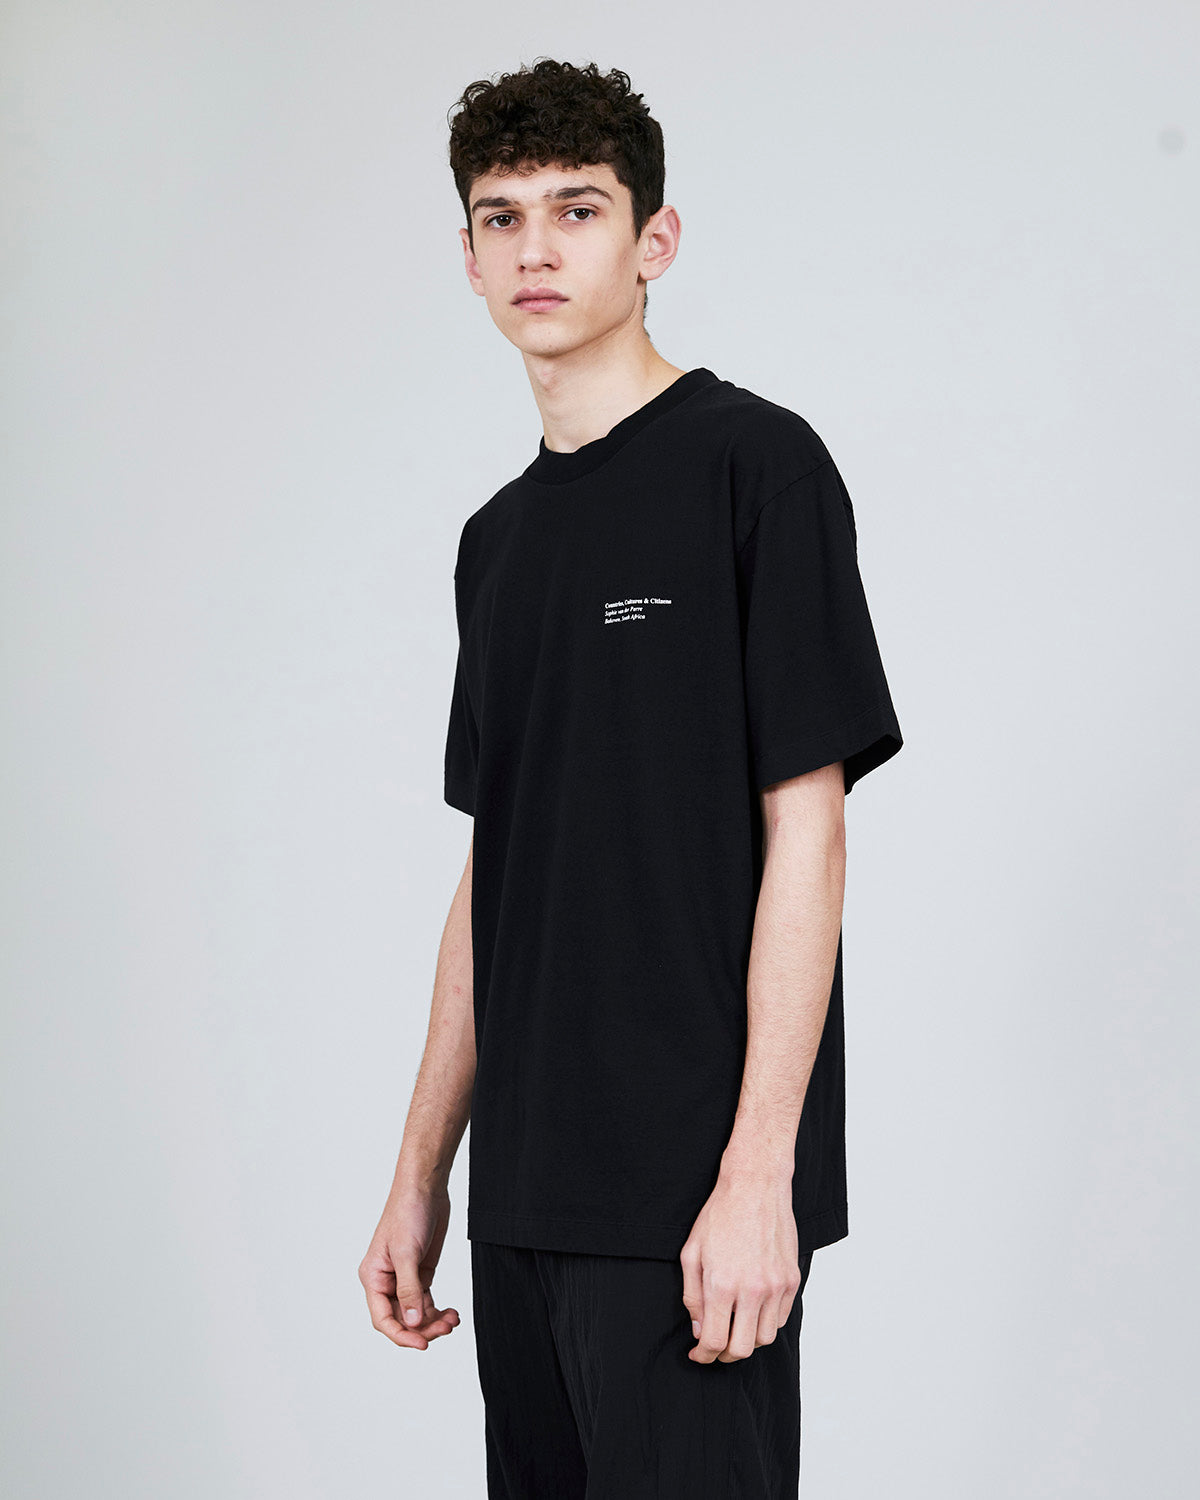 ØLÅF x Halal T - Sophie van der Perre Black, Portuguese fabric, 100% cotton (220 grams/sqm), Post wash, Fine ribbed collar, Made in Portugal